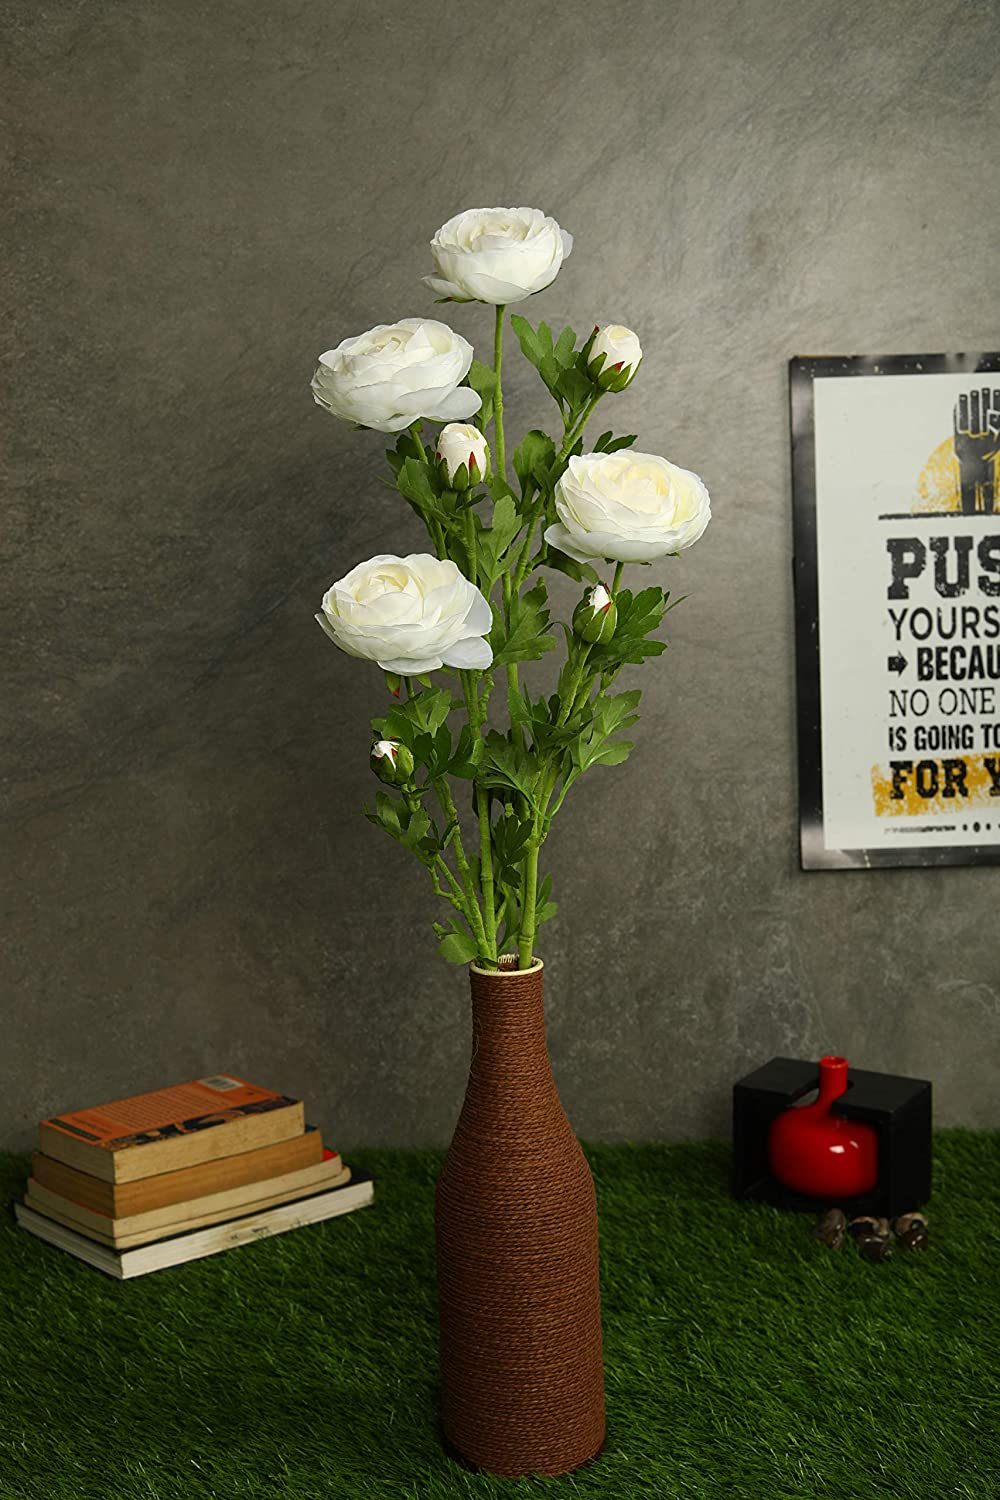 Pollination Decorative White Ranunculus Artificial Flower for Home Decor (Pack of 2, 28 Inch) - Artificial Flowers & Plants - PolliNation